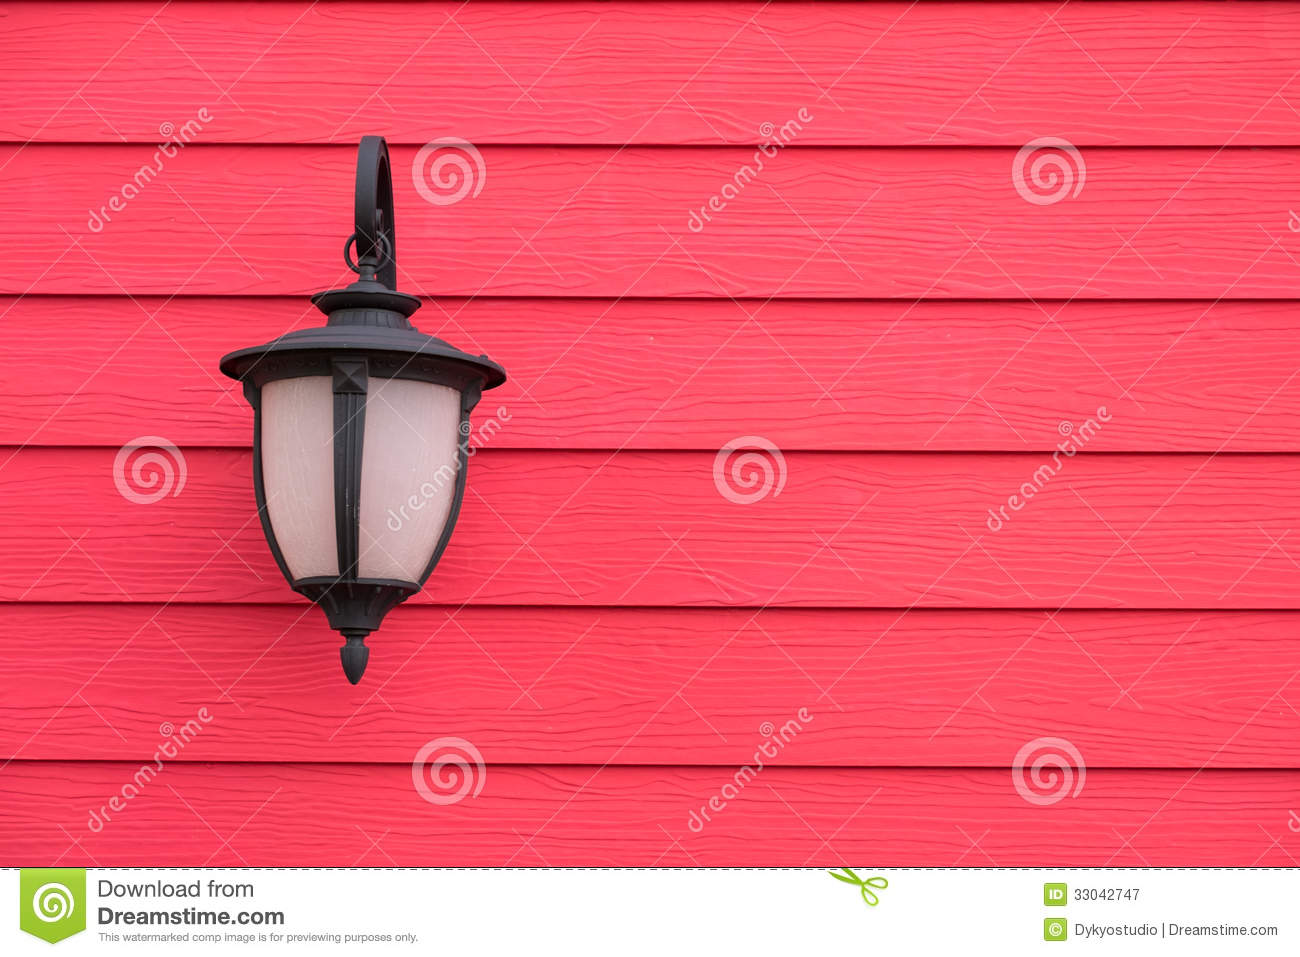 Vintage Antique Wall Lamp On Red Wood Wall, For Background With Royalty Free Stock Photography ...